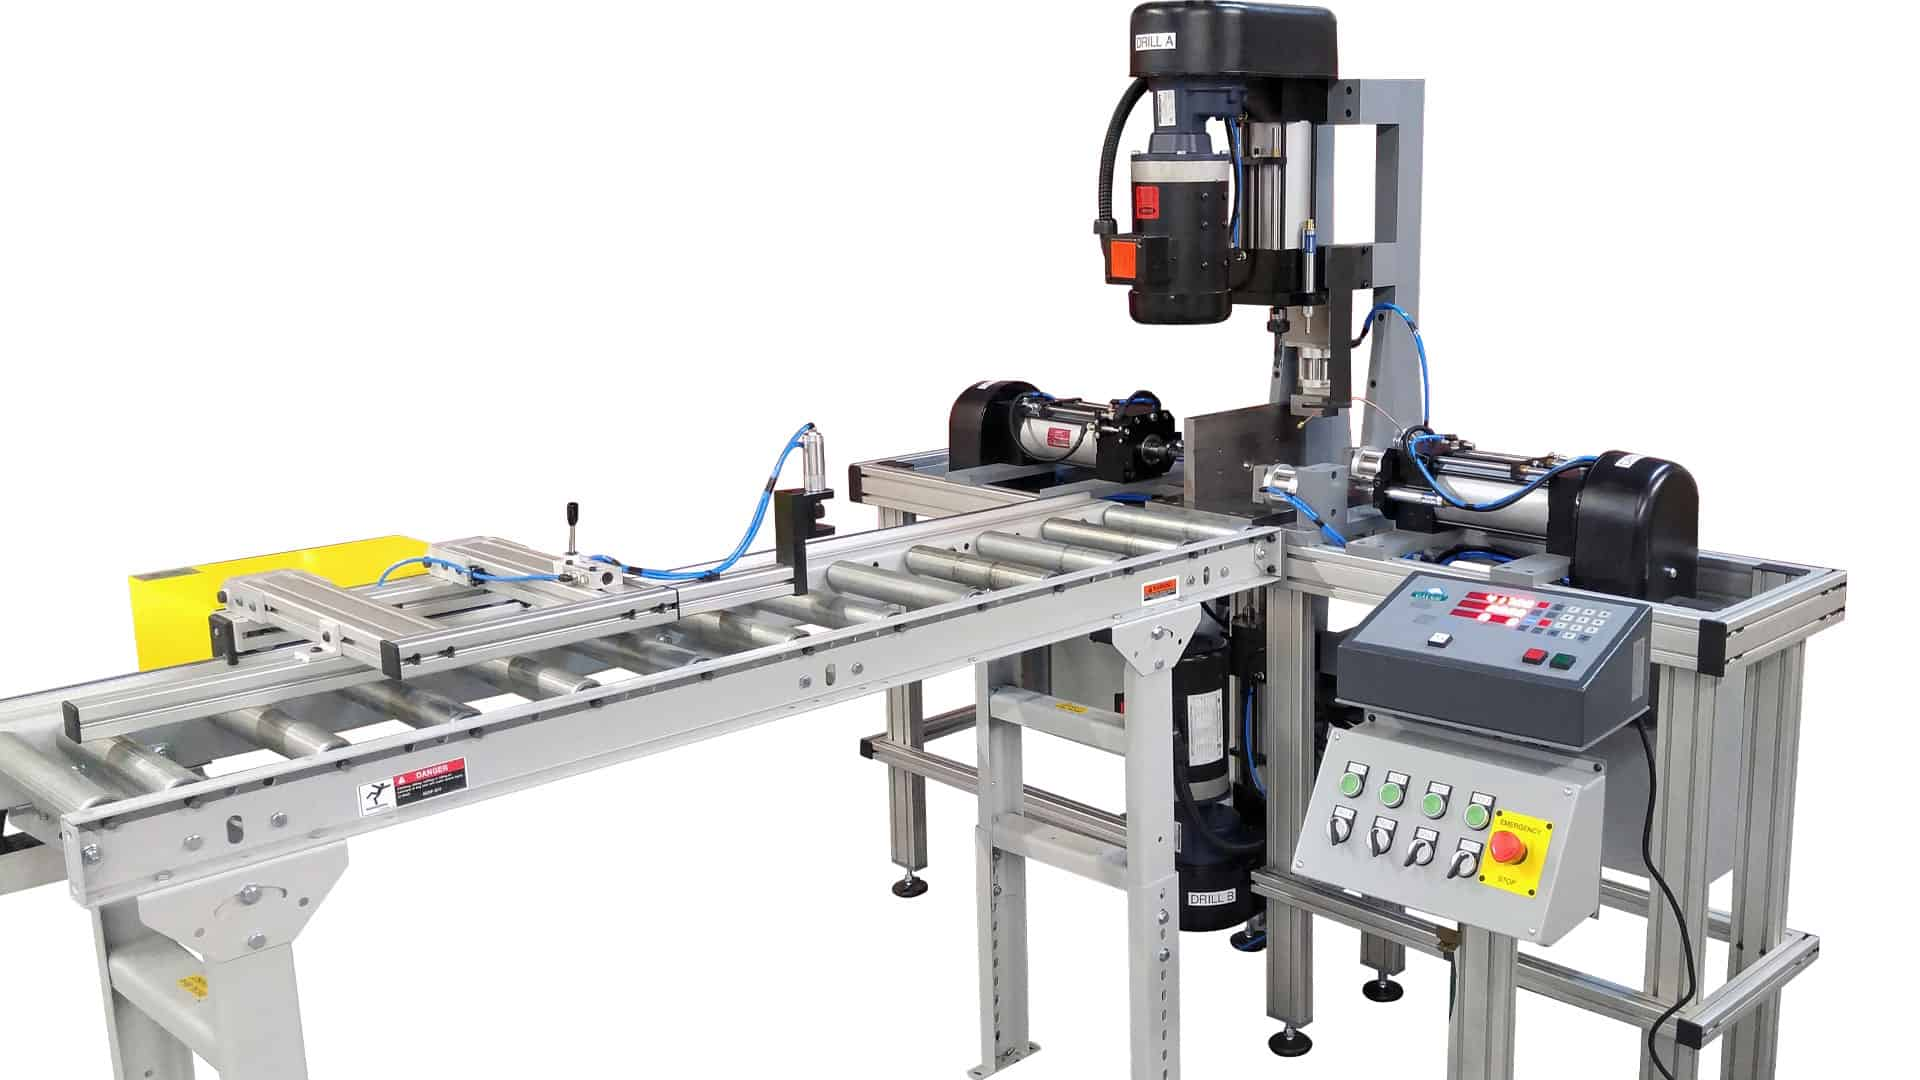 KDP - Automatic Drilling System